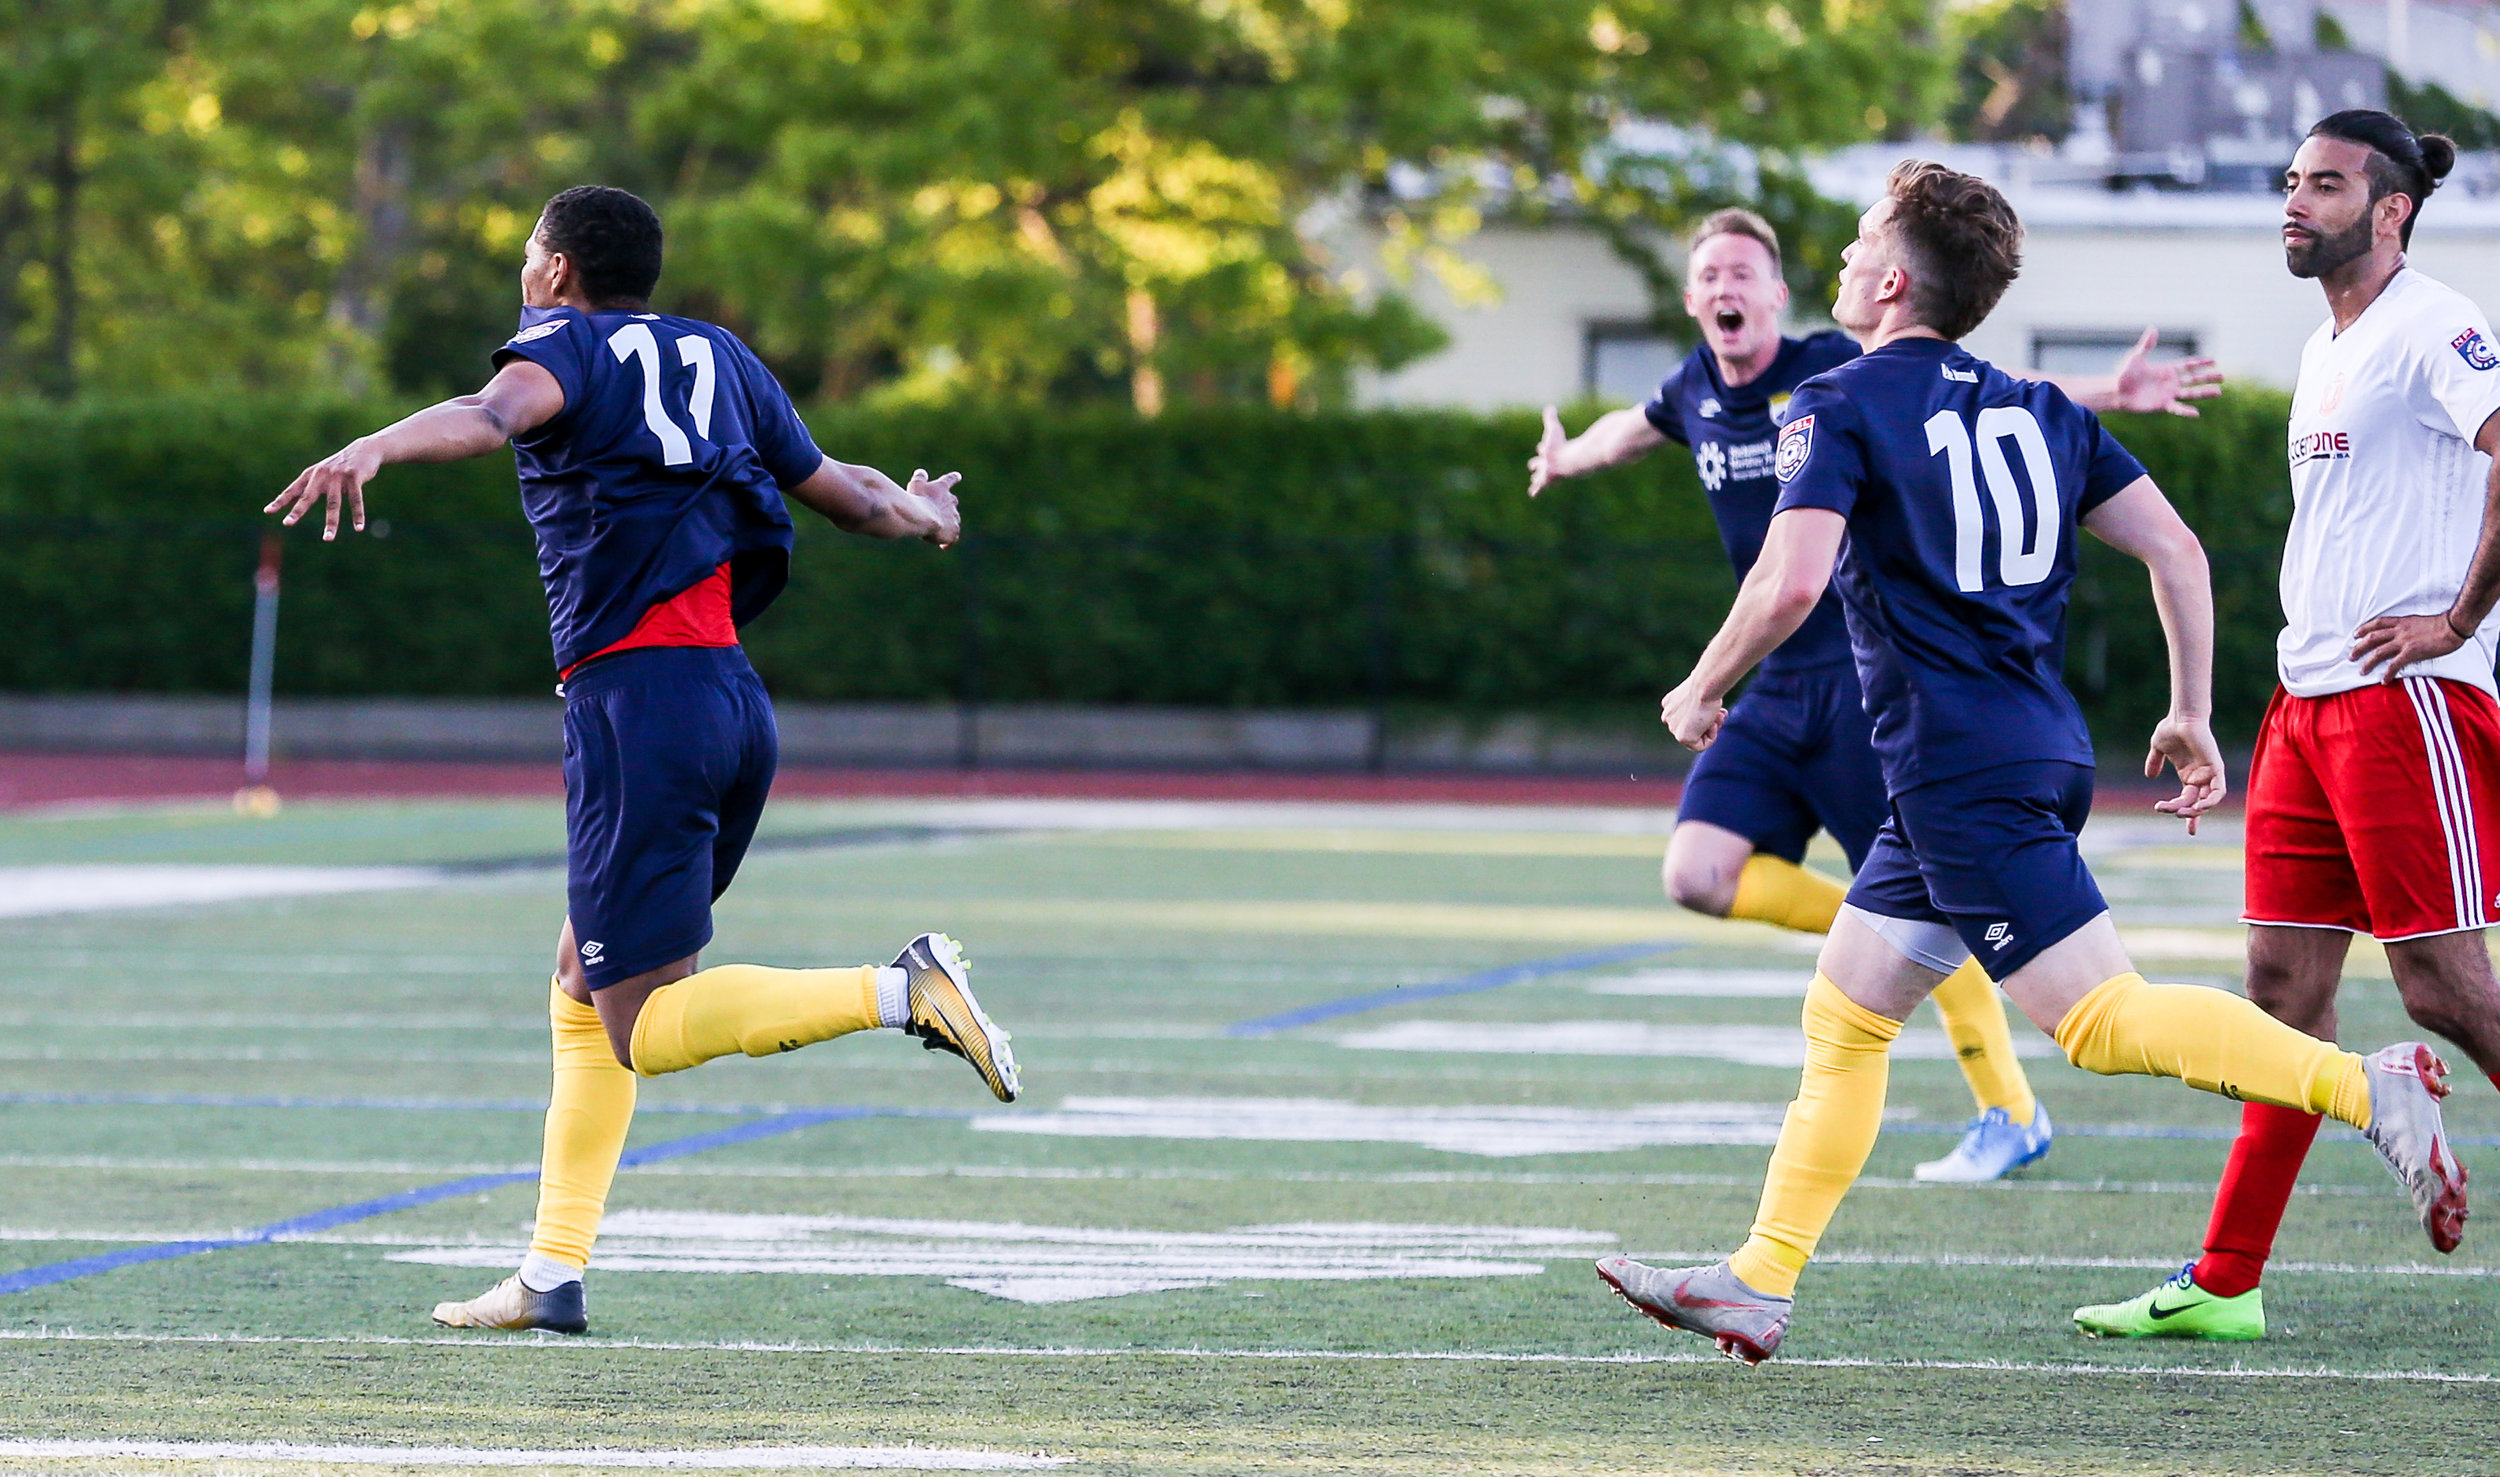 Forward Regsan Watkins scored in the 55th minute to extend FC Monmouth's lead on Saturday night.